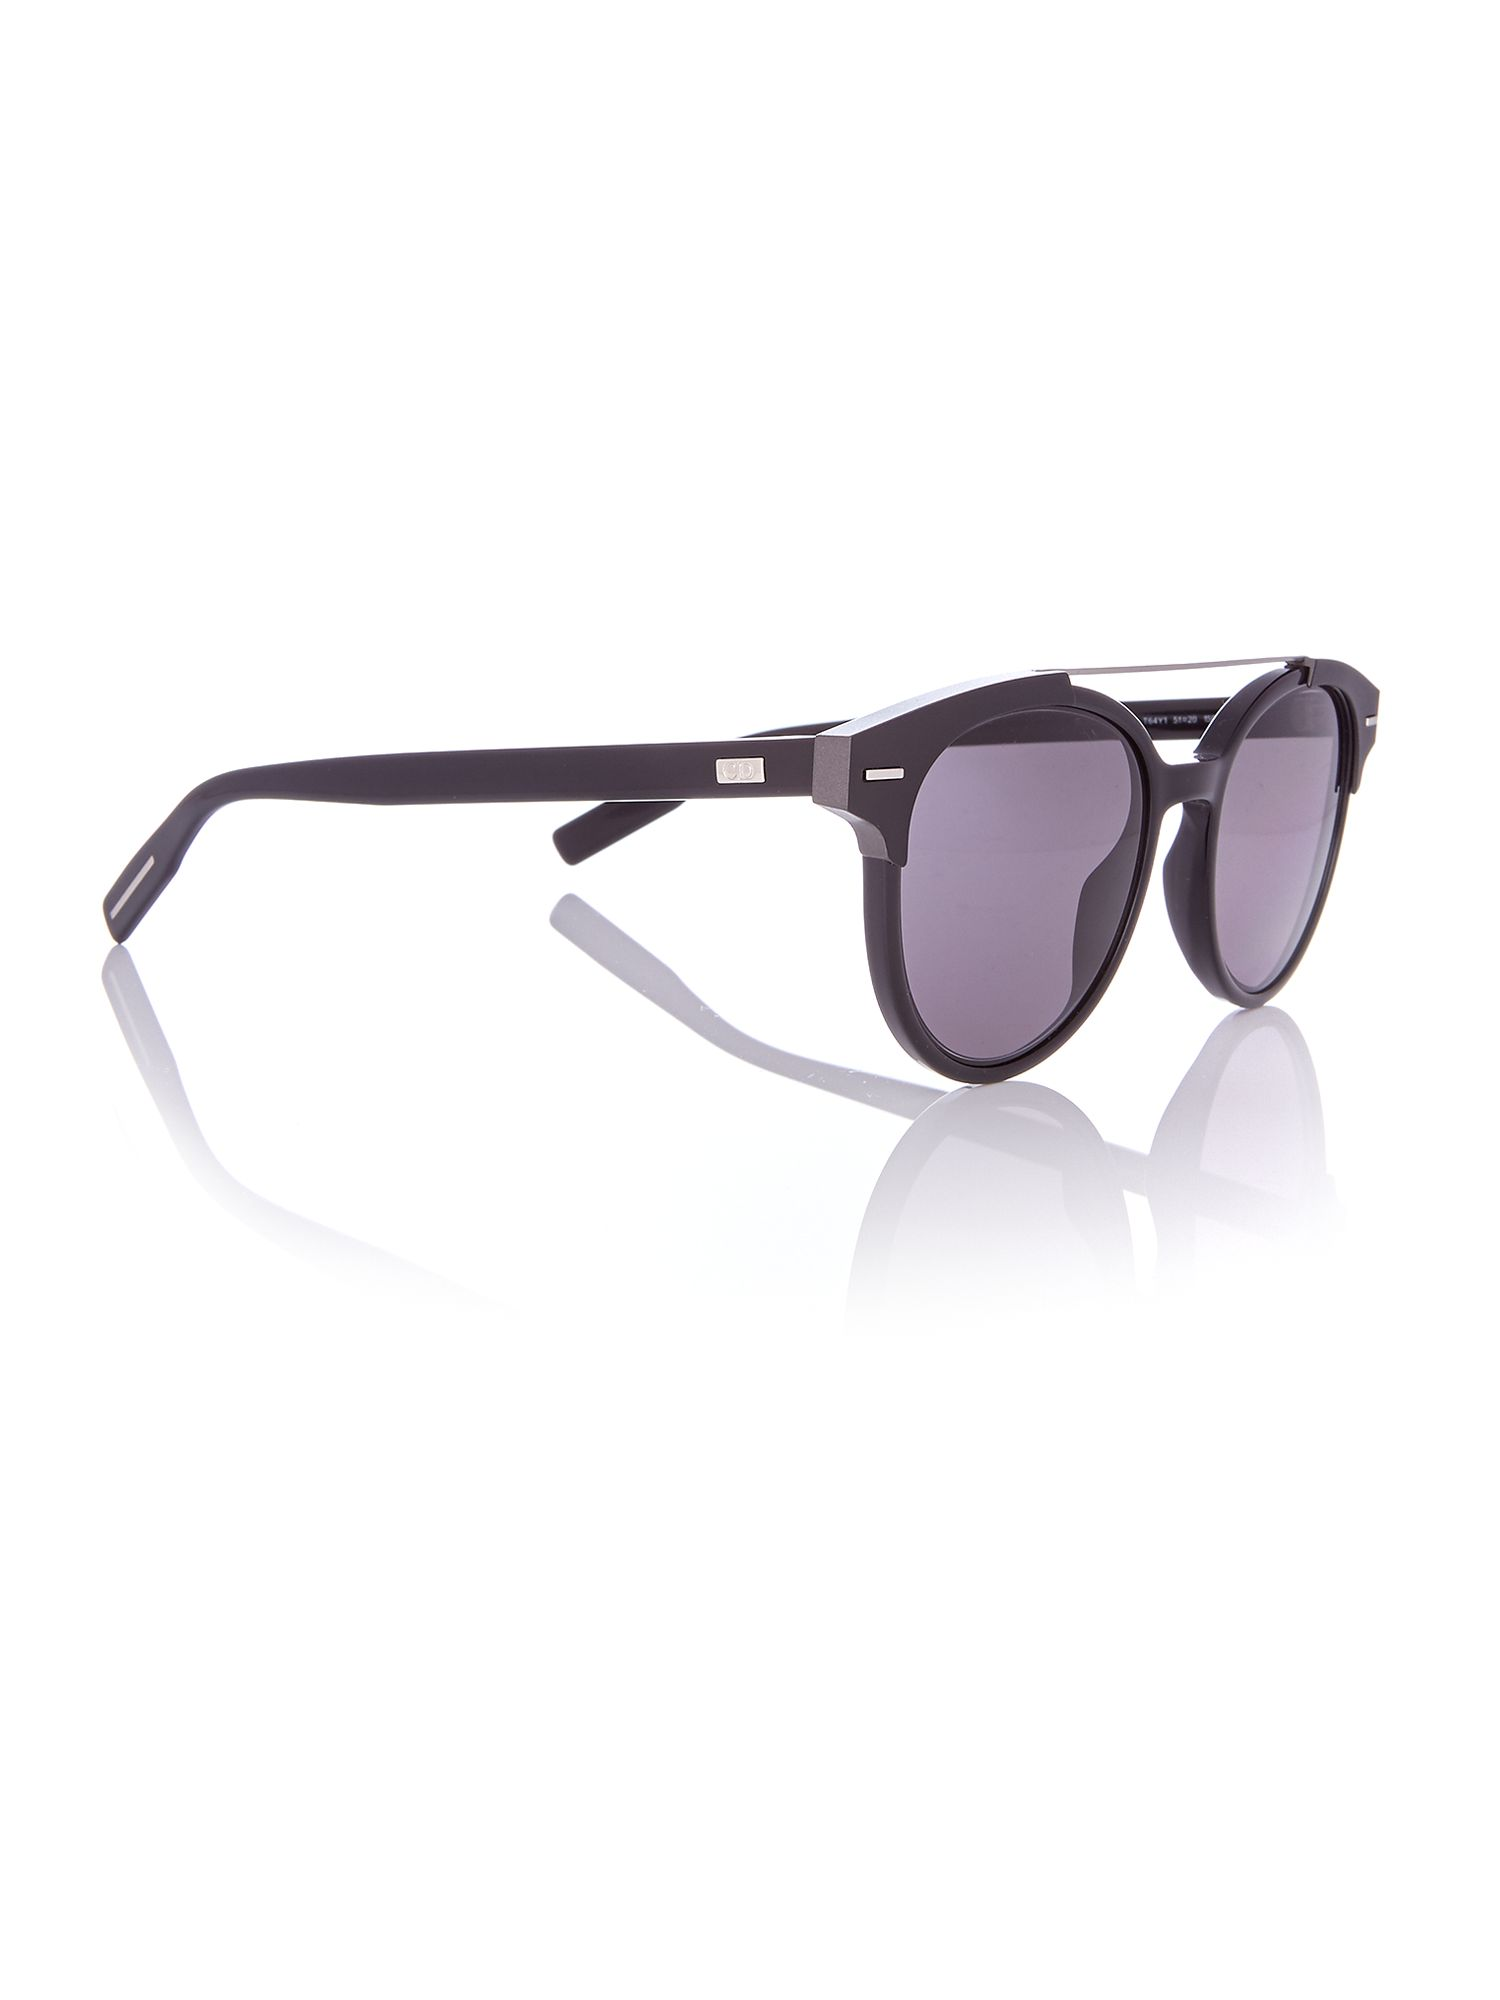 1e4ebd7c0b Buy cheap Dior sunglasses - compare Glasses prices for best UK deals